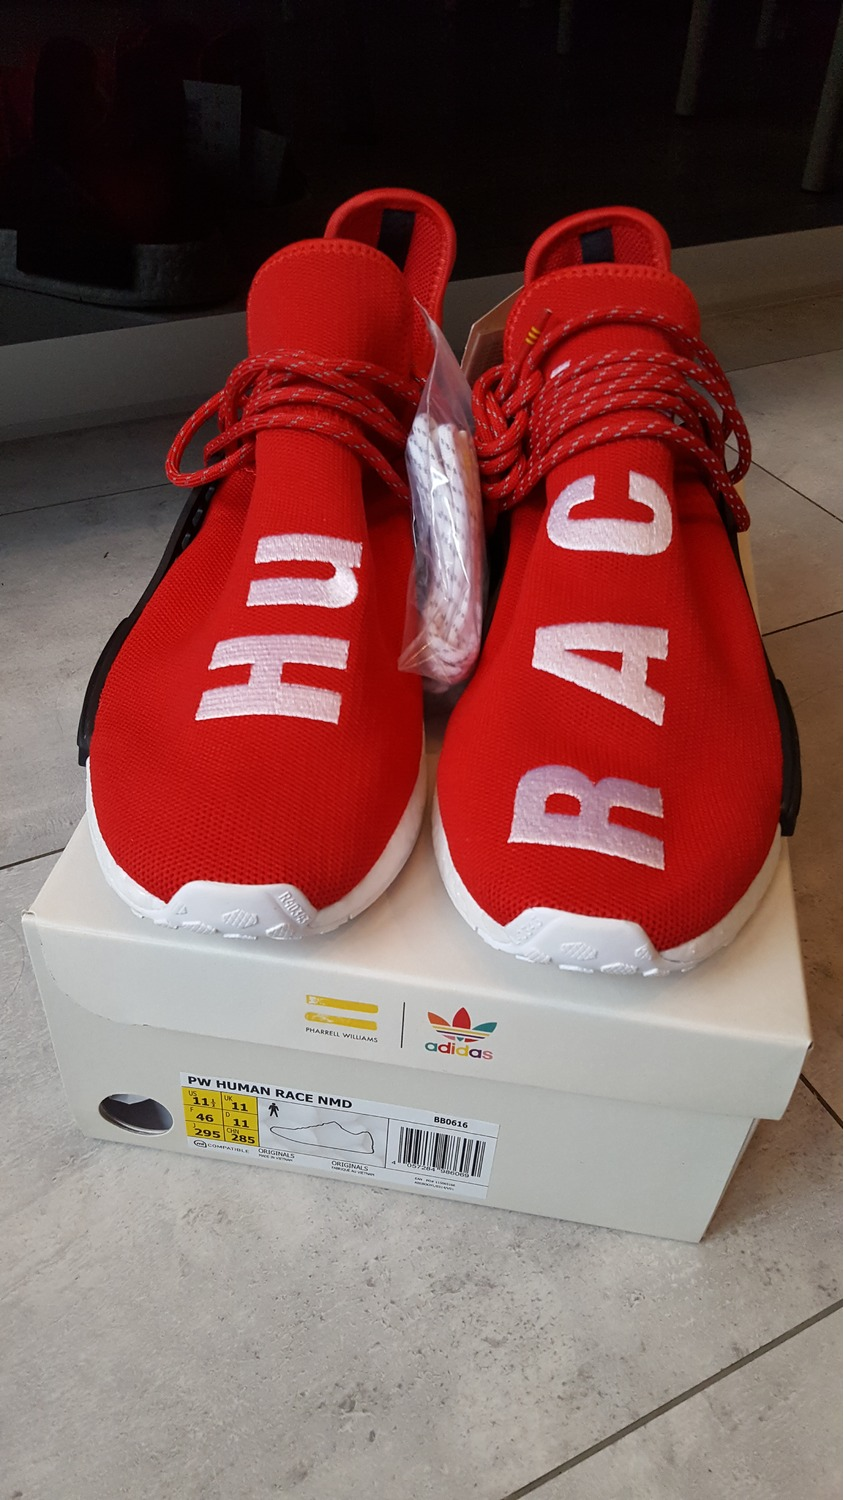 adidas NMD C1 Lush Red Suede Chukka S79147 DS on Hand Ready